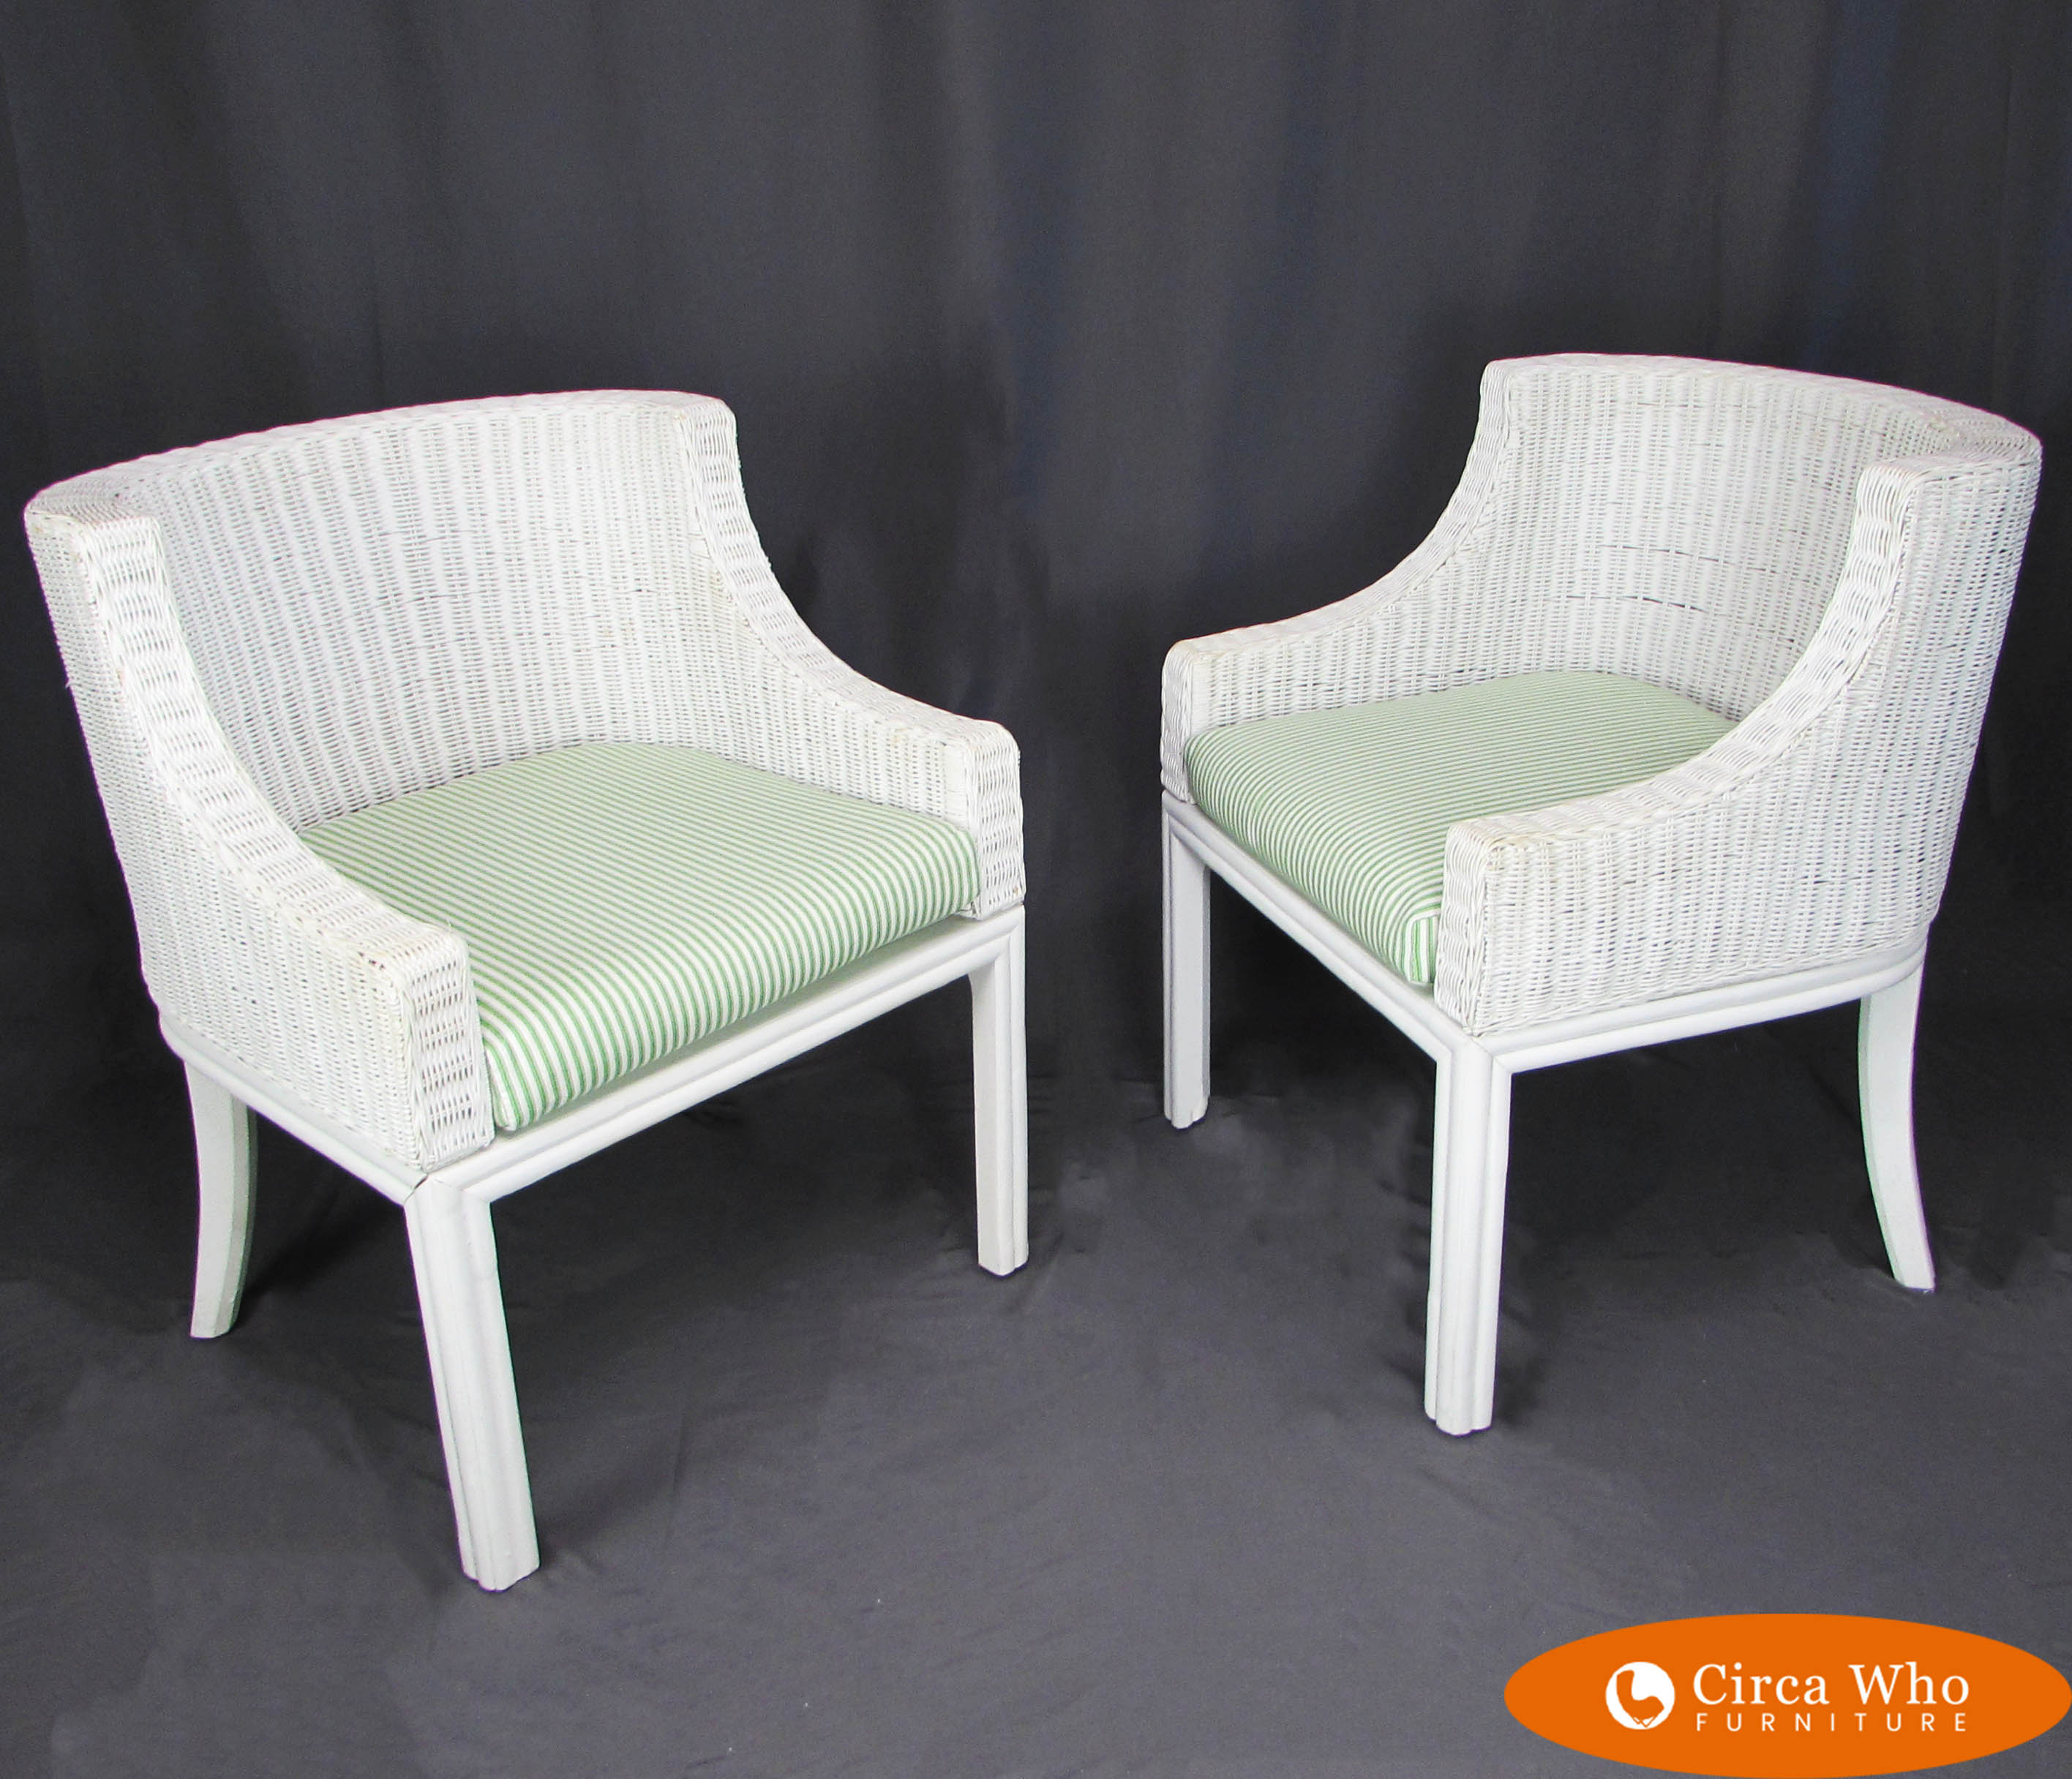 Pair Of White Woven Rattan Chairs Circa Who